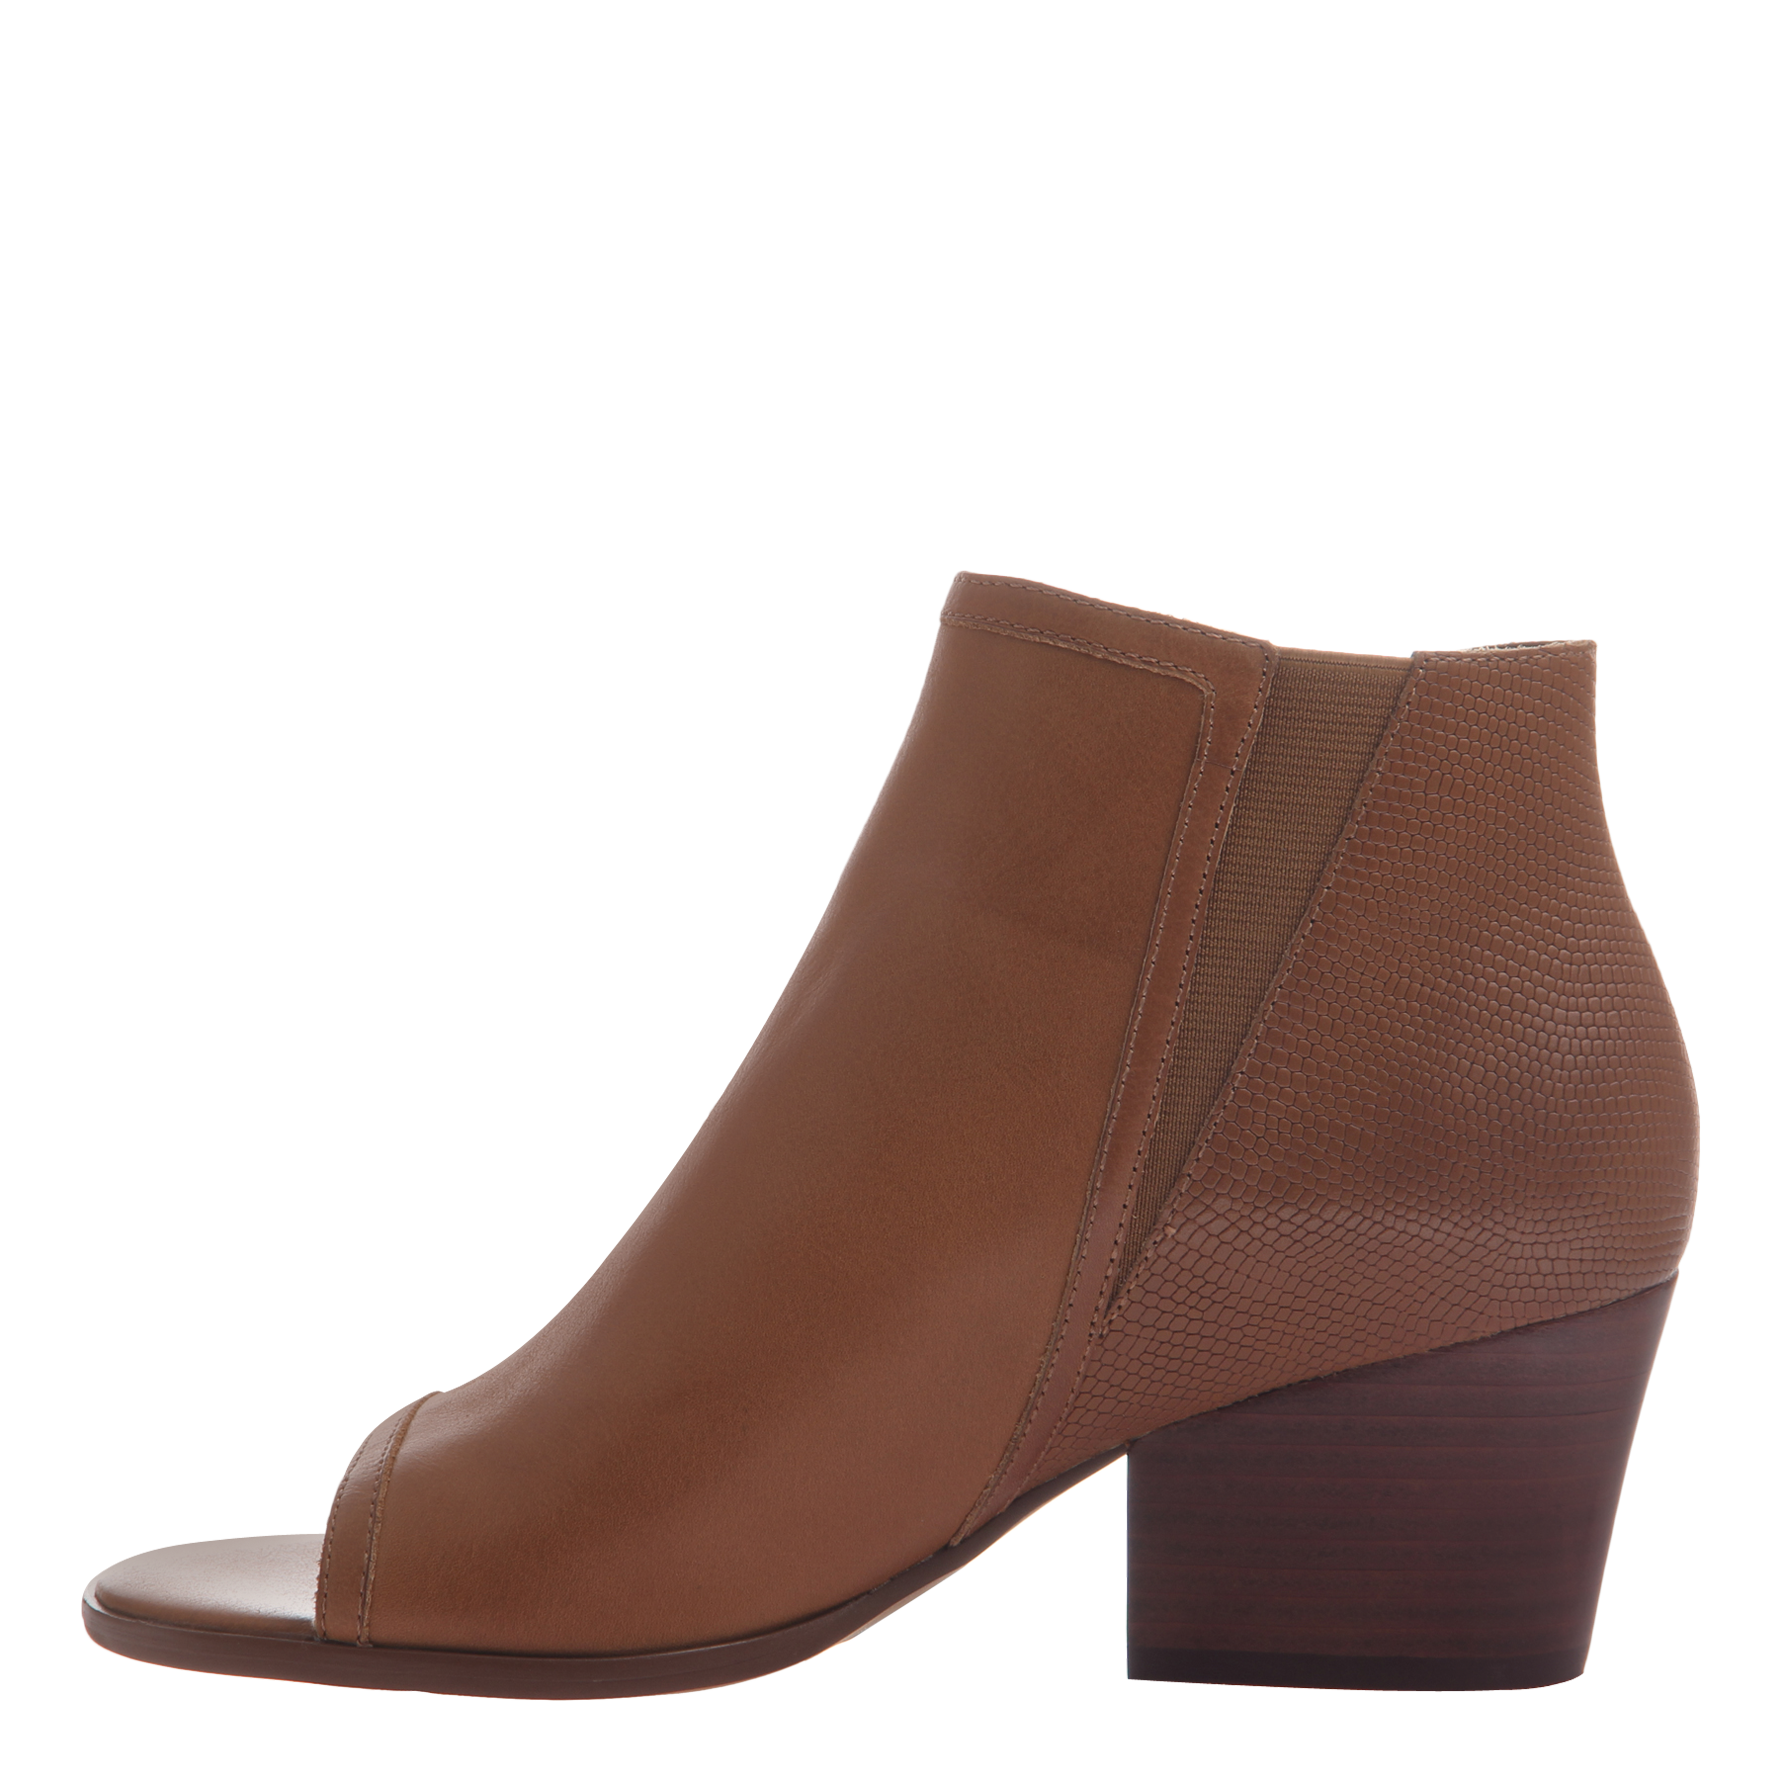 Nicole womens ankle boot Ania in butterscotch inside view